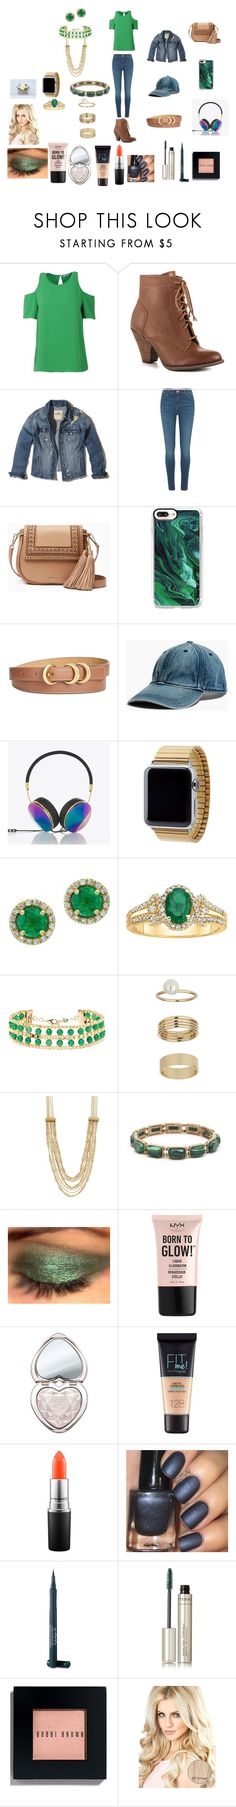 """Walking In The Forest"" by shadowmentor on Polyvore featuring P.A.R.O.S.H., Mojo Moxy, Hollister Co., River Island, Kate Spade, Casetify, Anne Klein, Madewell, Frends and Rilee & Lo"